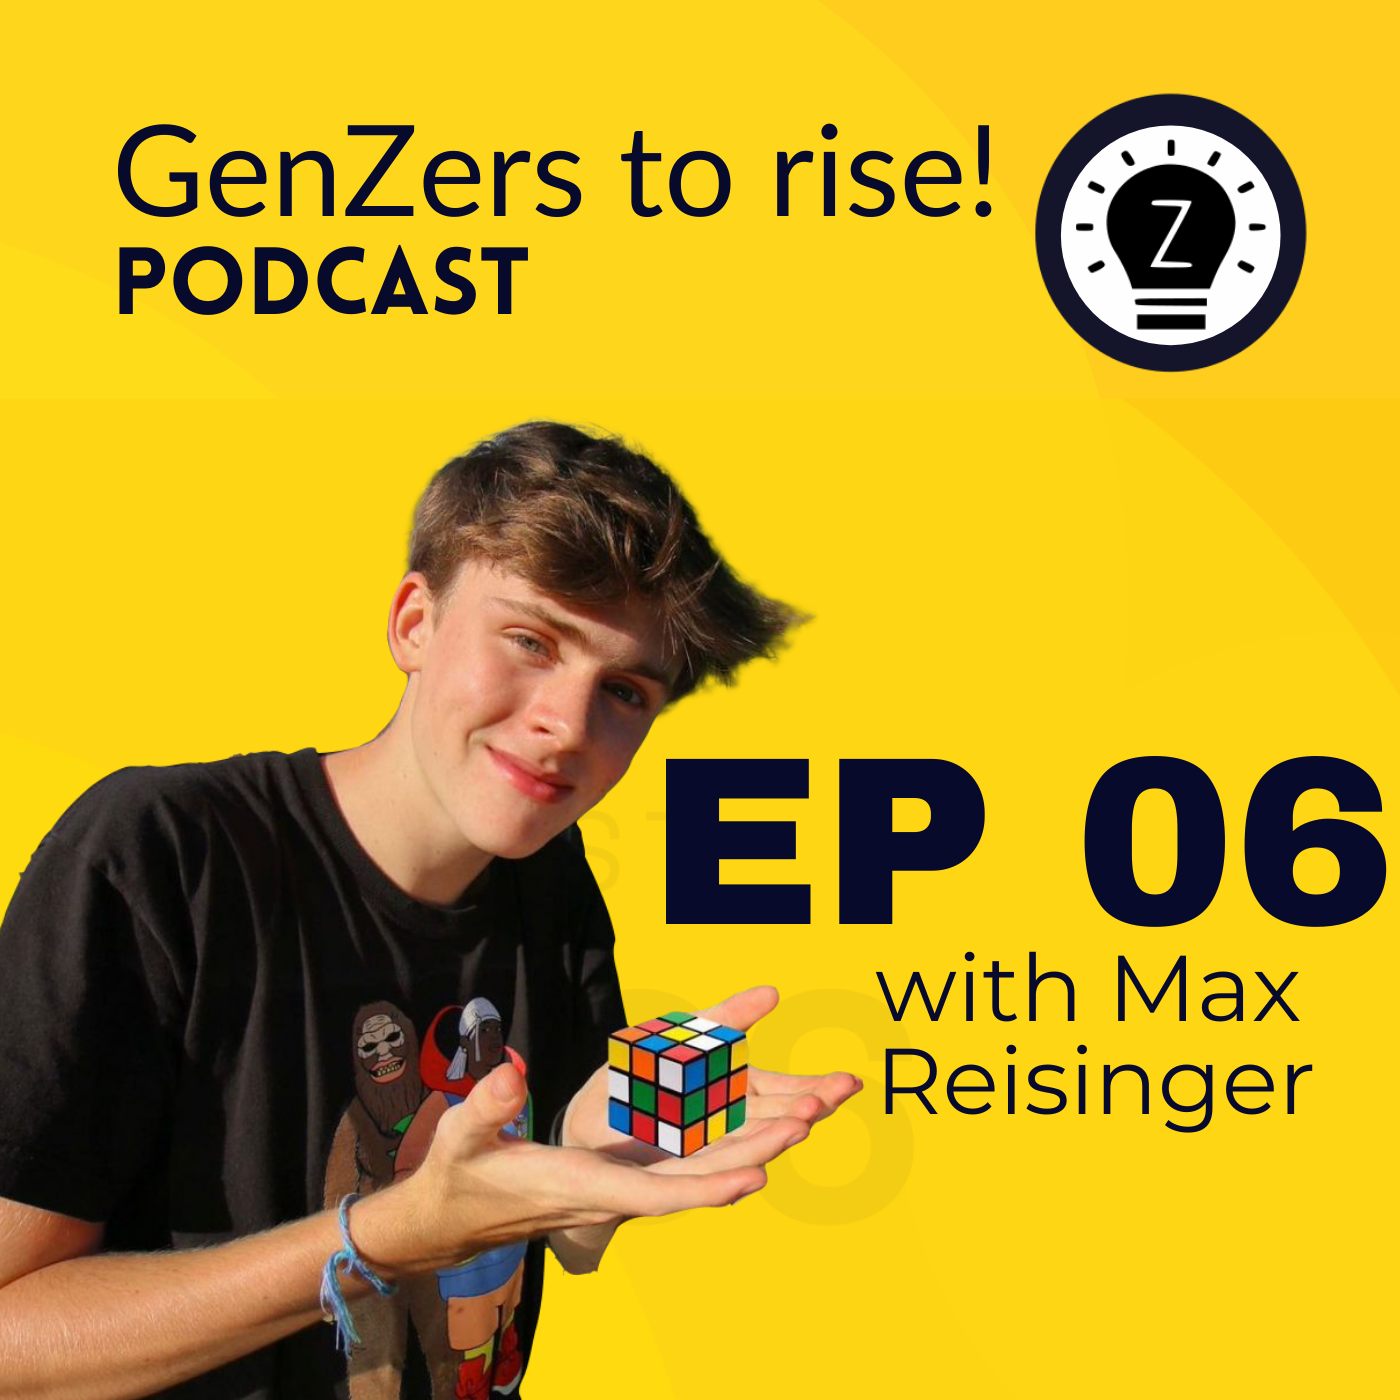 Ep 6 of genzers to rise! podcast: Max Reisinger - YouTuber, Entrepreneur and Optimist